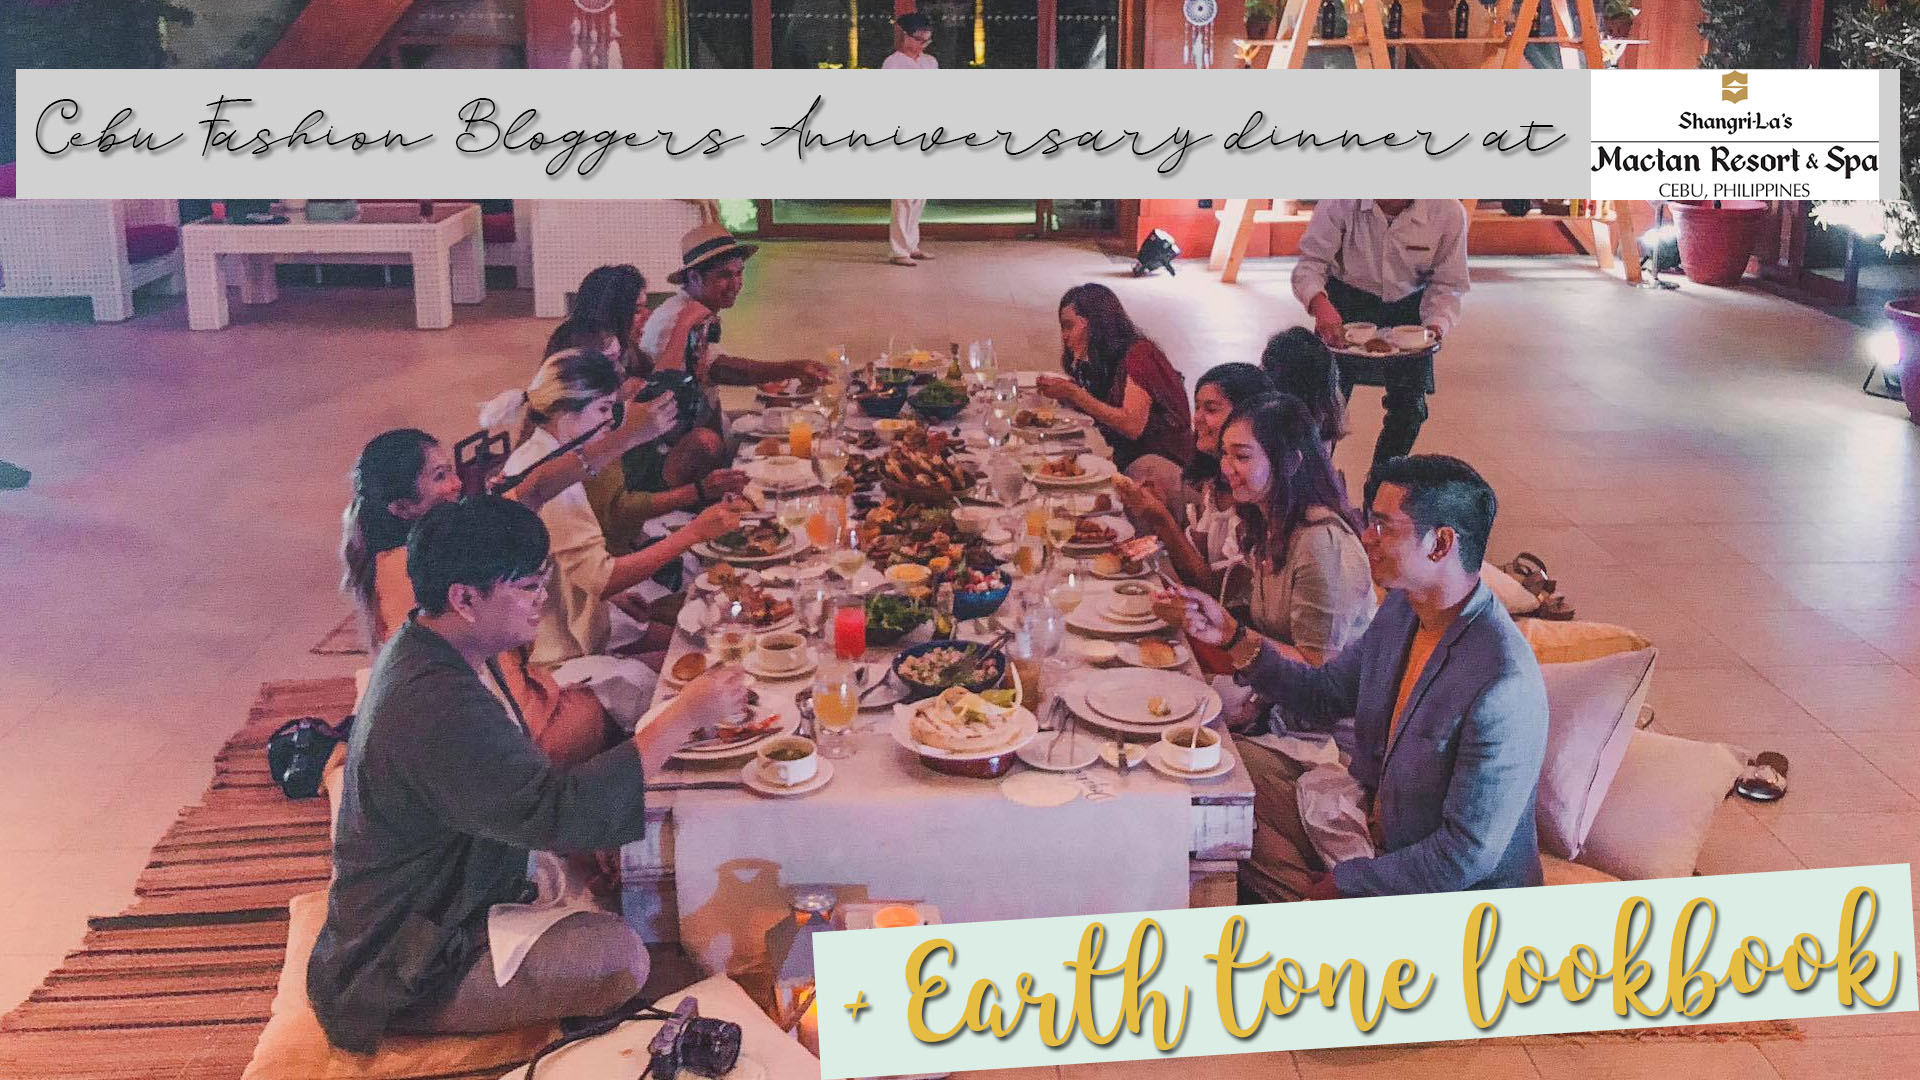 [Vlog] Earth Tone Lookbook- Cebu Fashion Bloggers' 9th Year Anniversary